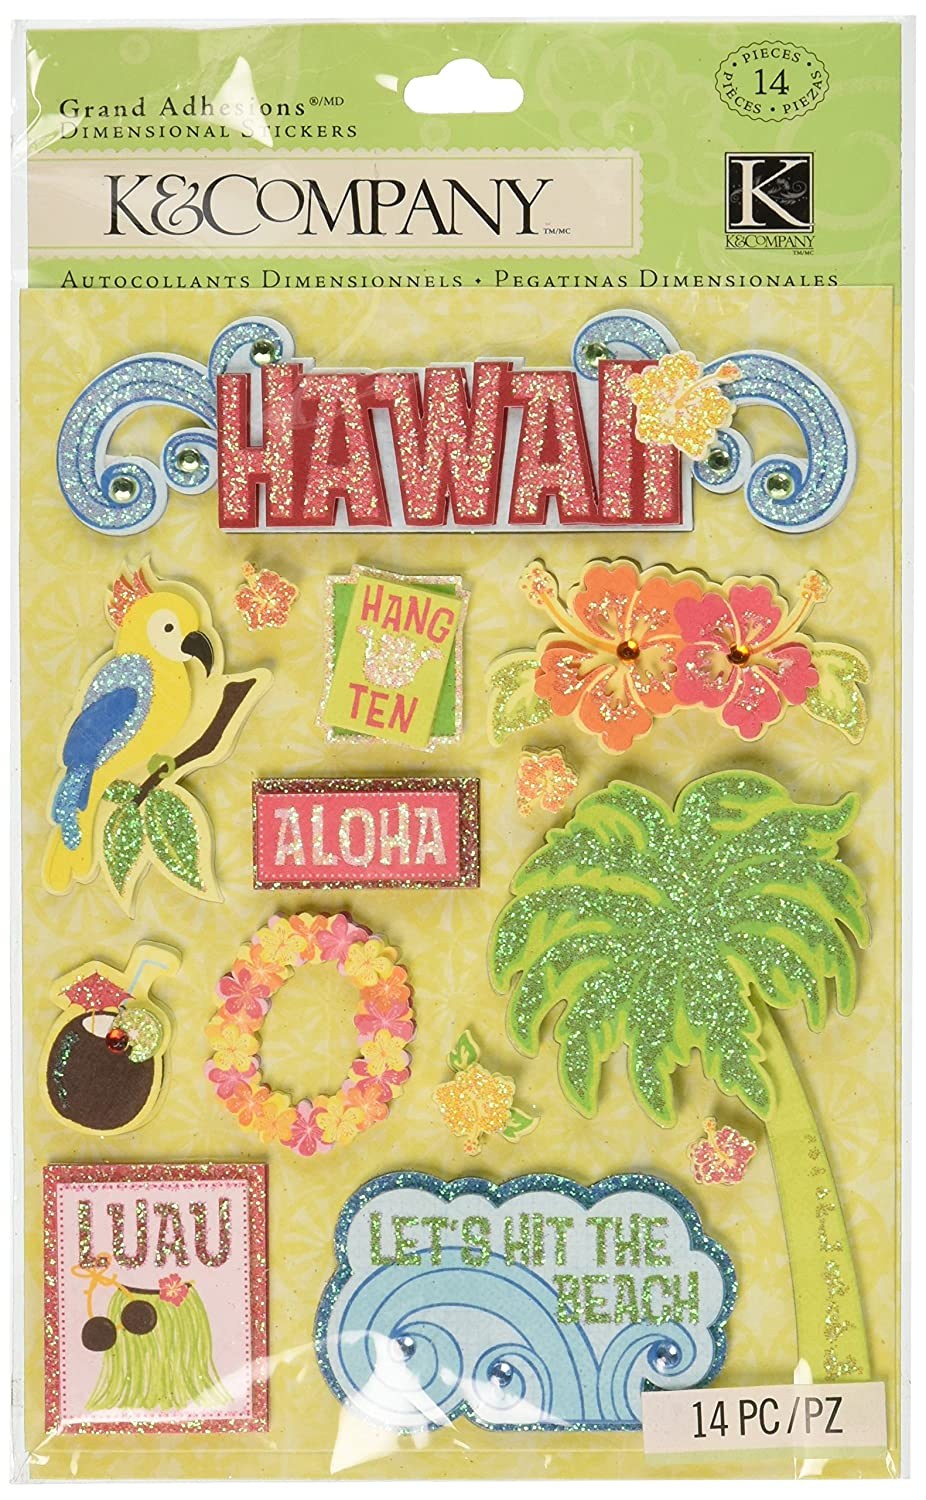 K and Company Citronella Hawaii Grand Adhesions Stickers